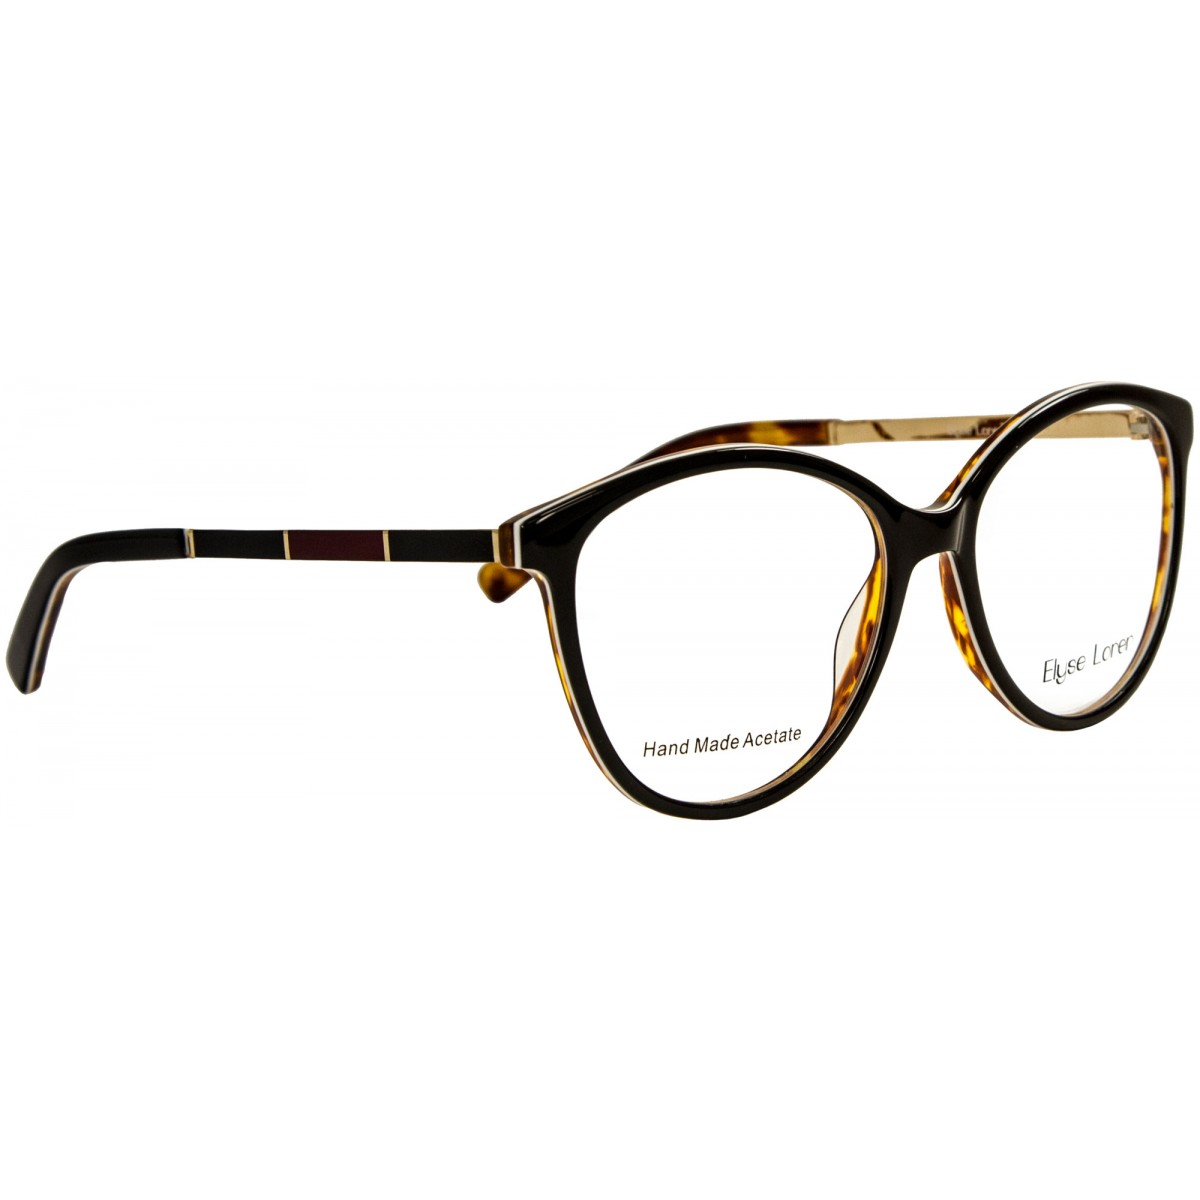 57977c12011f Online Eyeglasses with Customer Service Center in California ...